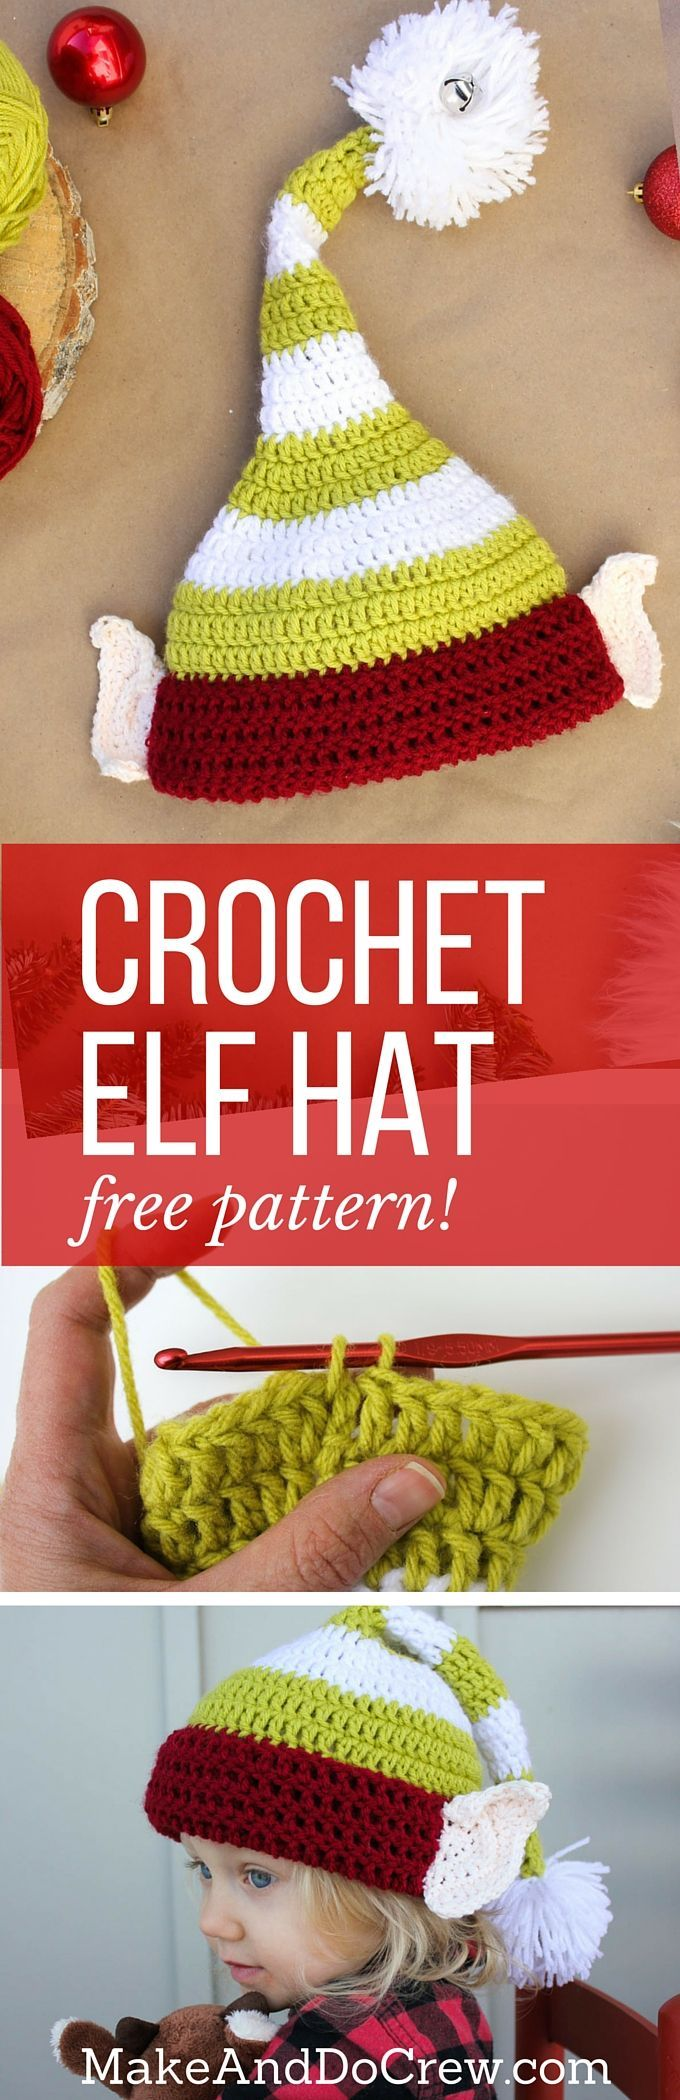 Santa\'s Helper Free Crochet Elf Hat Pattern (With Ears!) | Tejido ...